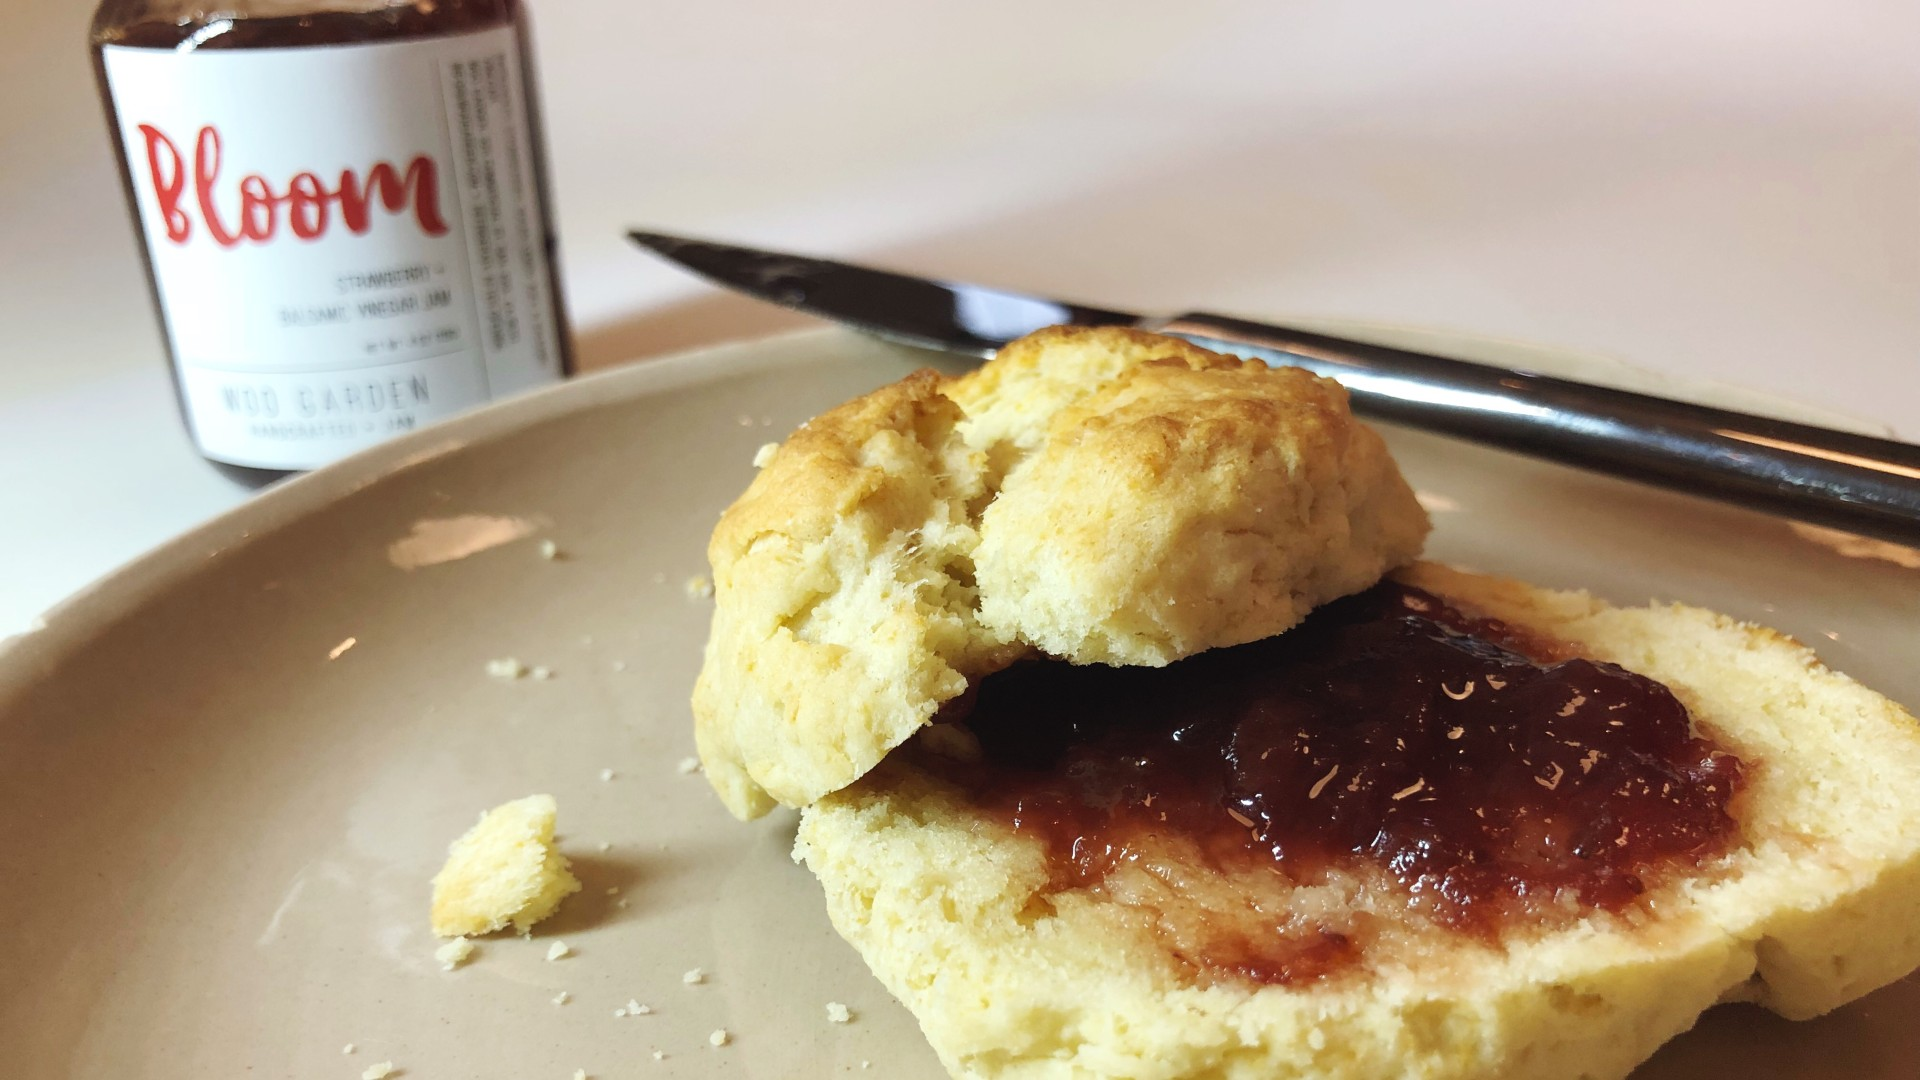 Small batch preserves and homemade biscuits. A perfect artisan find for the Kelley household!